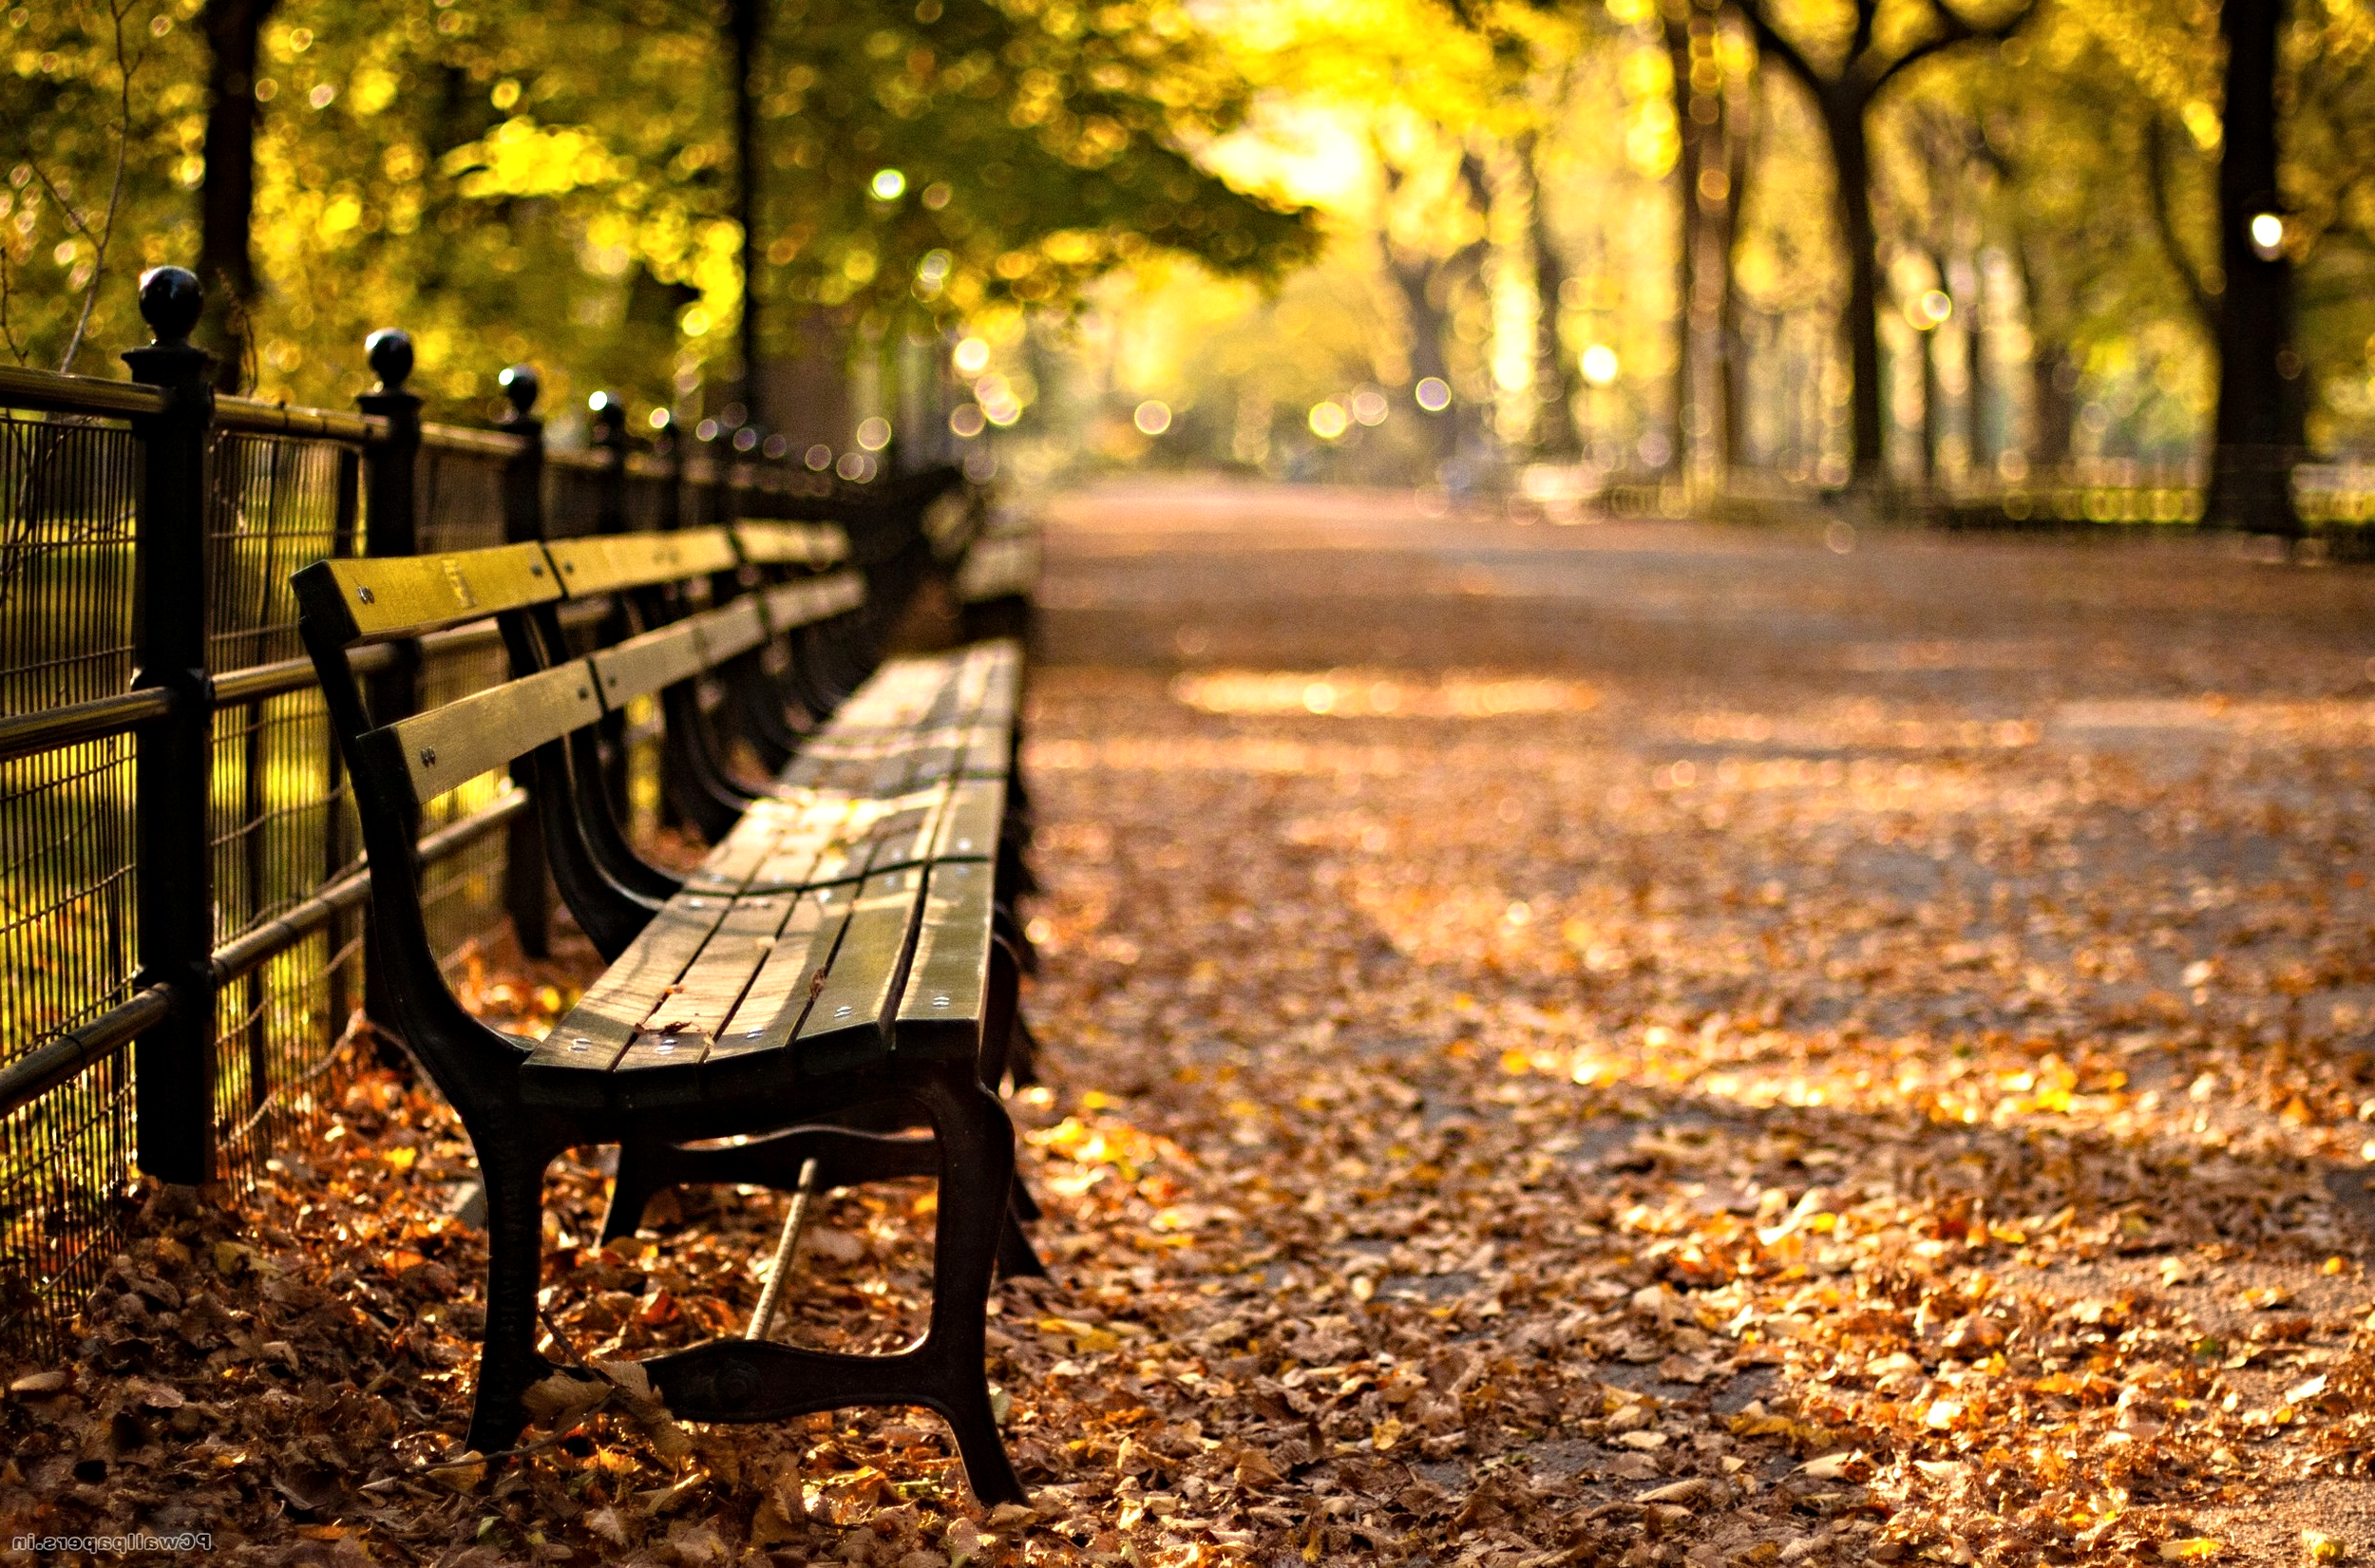 Central Park Iphone 6 Wallpaper The Welcome Blog Central Park The Secrets In The Heart